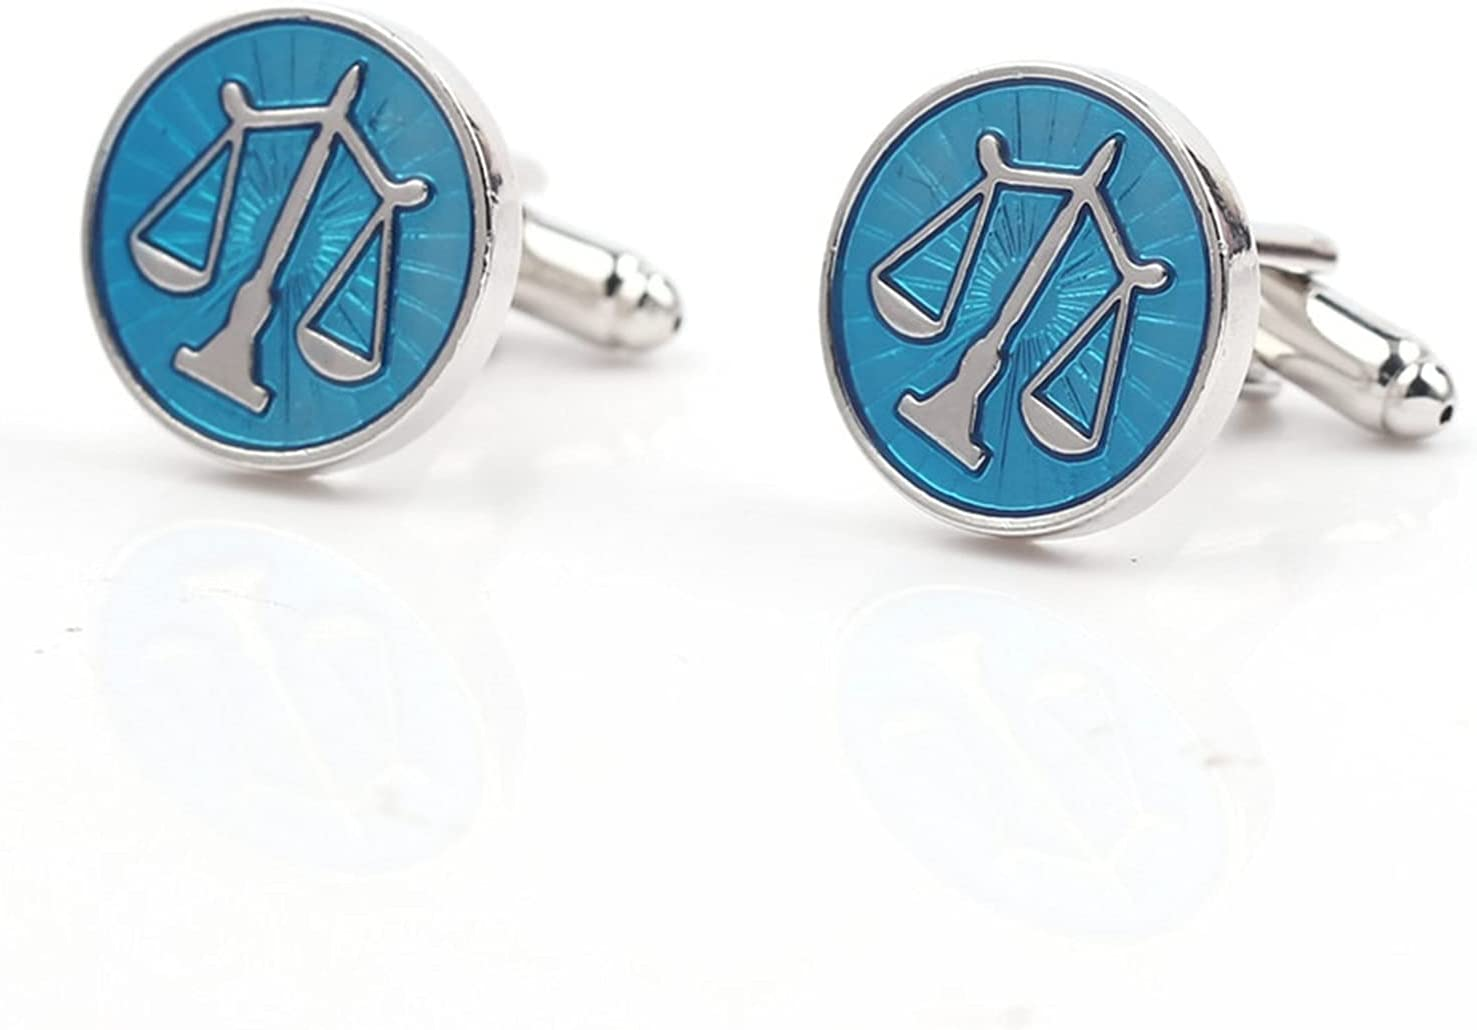 chenfeng Cufflinks Libra Scales Scorpio Cufflinks Round Balance Cuff Links for Mens Shirt Studs Gift (Metal Color : XK219)